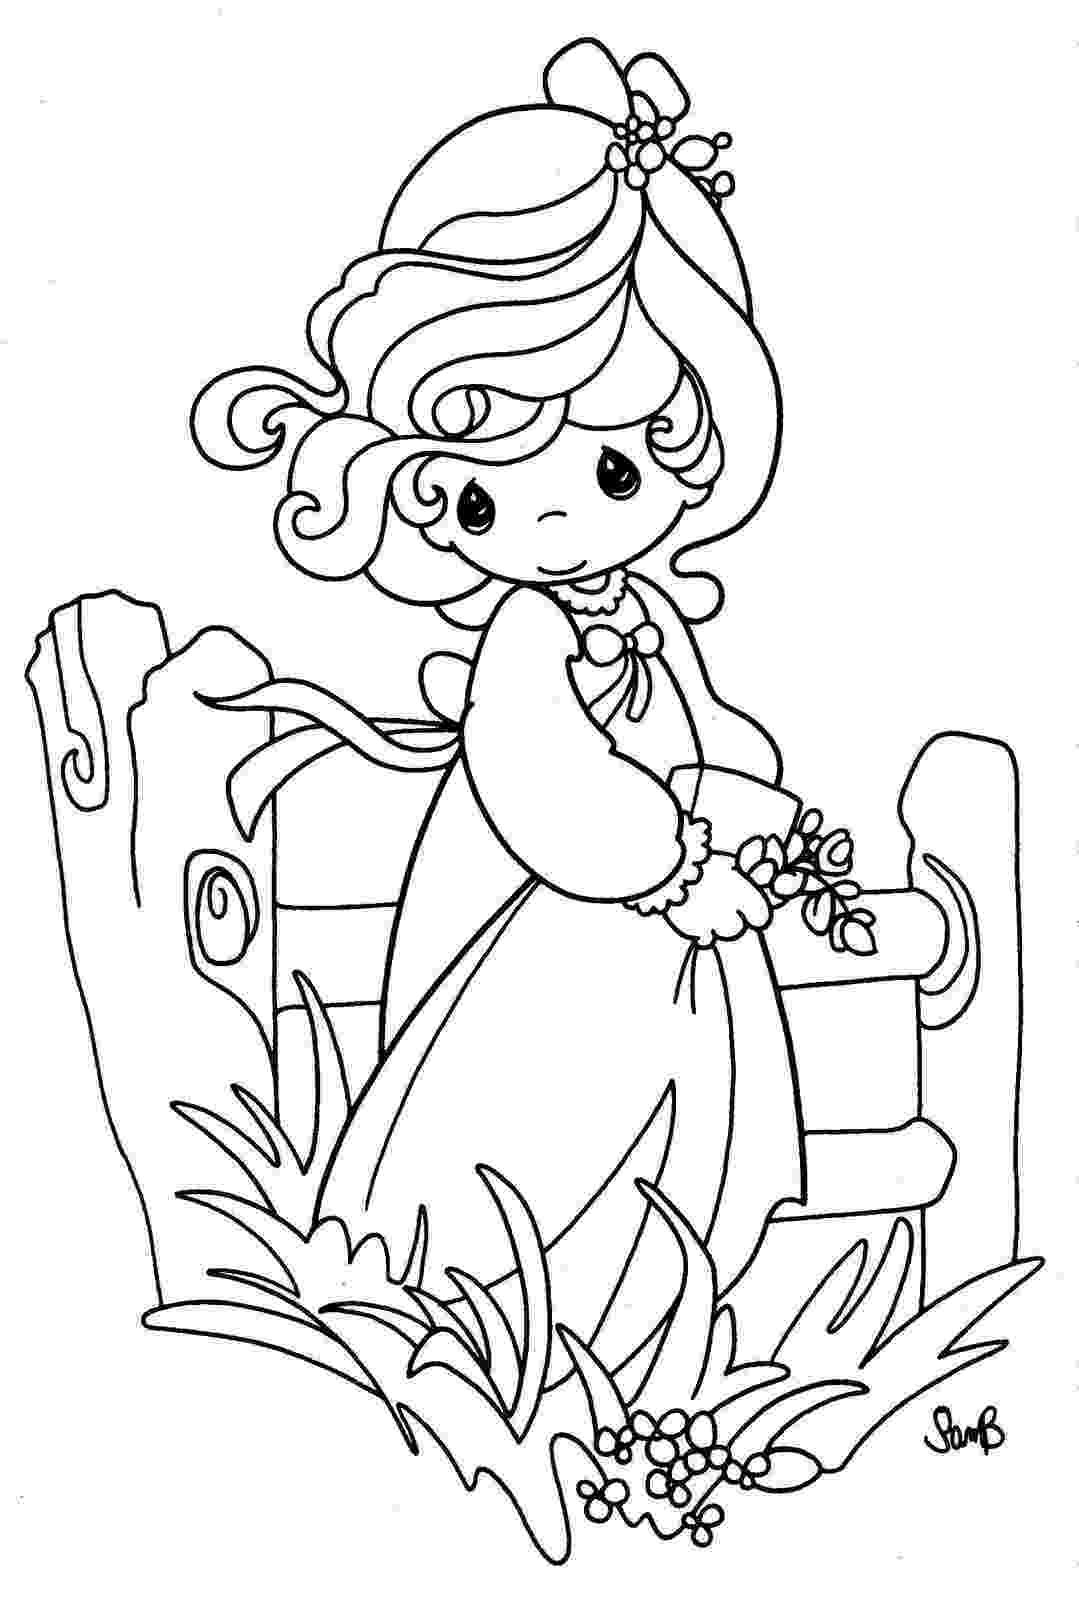 precious moments printable coloring pages precious moments coloring pages getcoloringpagescom precious moments coloring pages printable